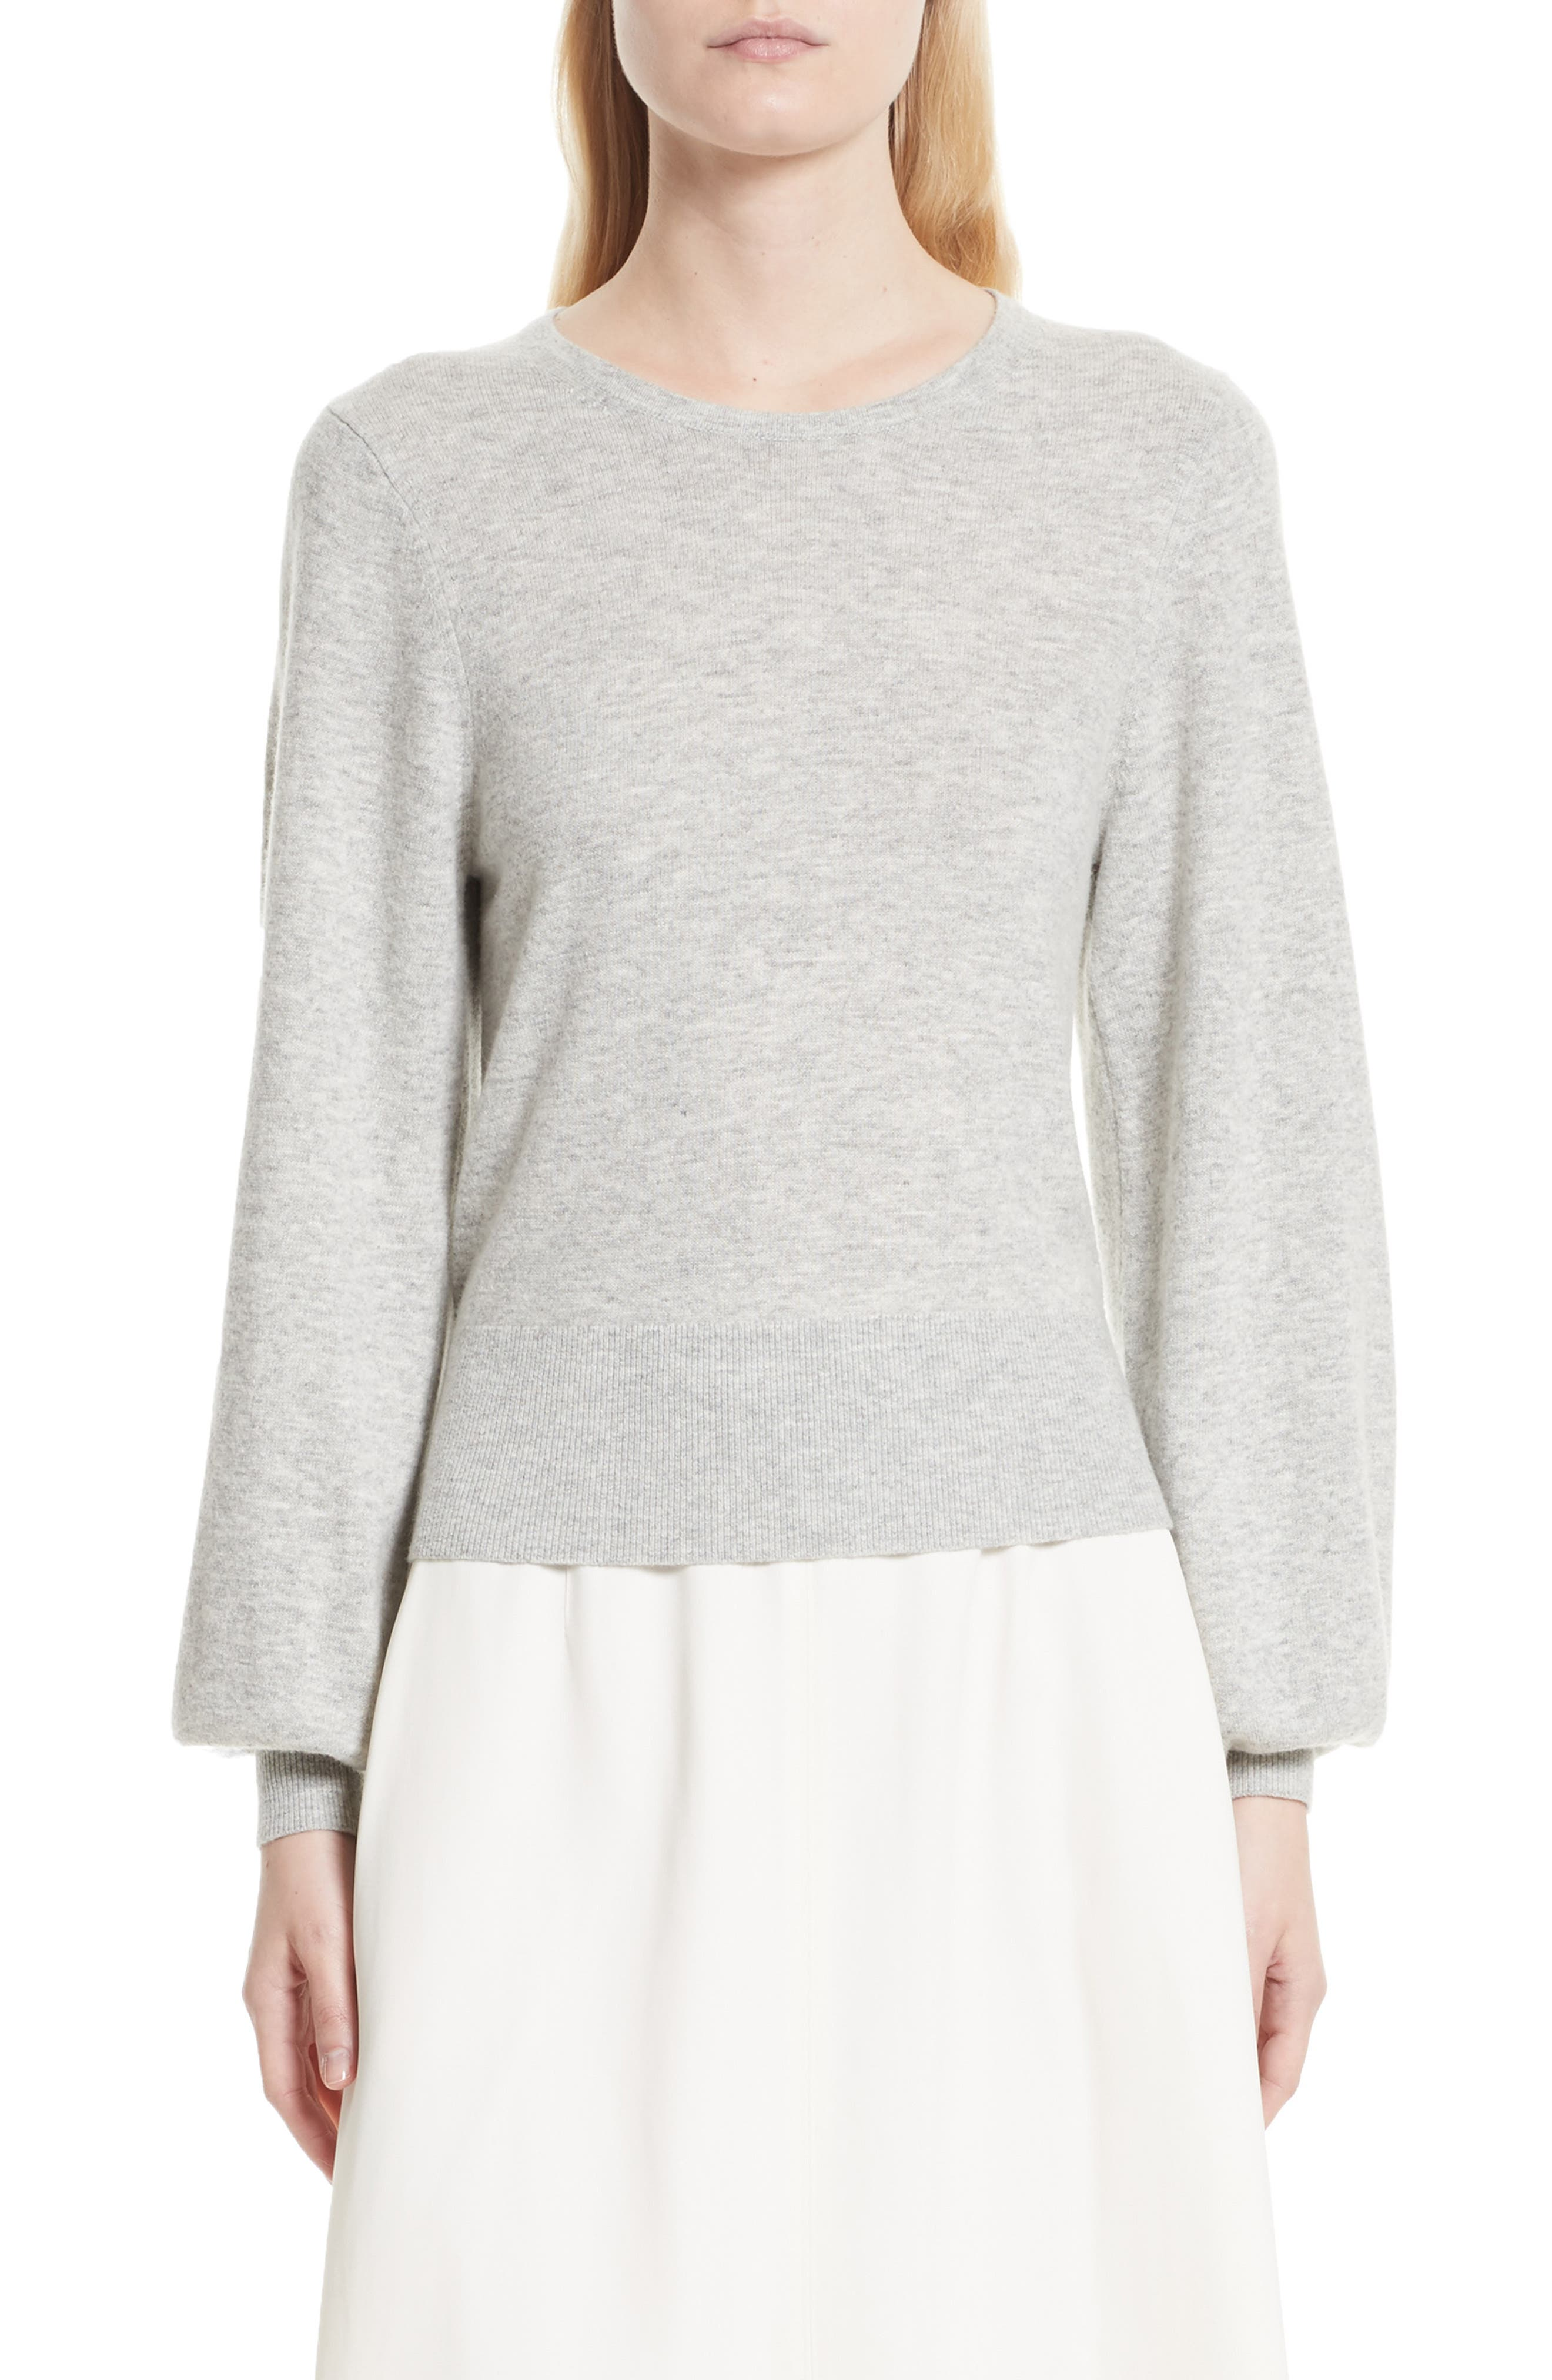 Bretta Sweater,                             Main thumbnail 1, color,                             Heather Grey